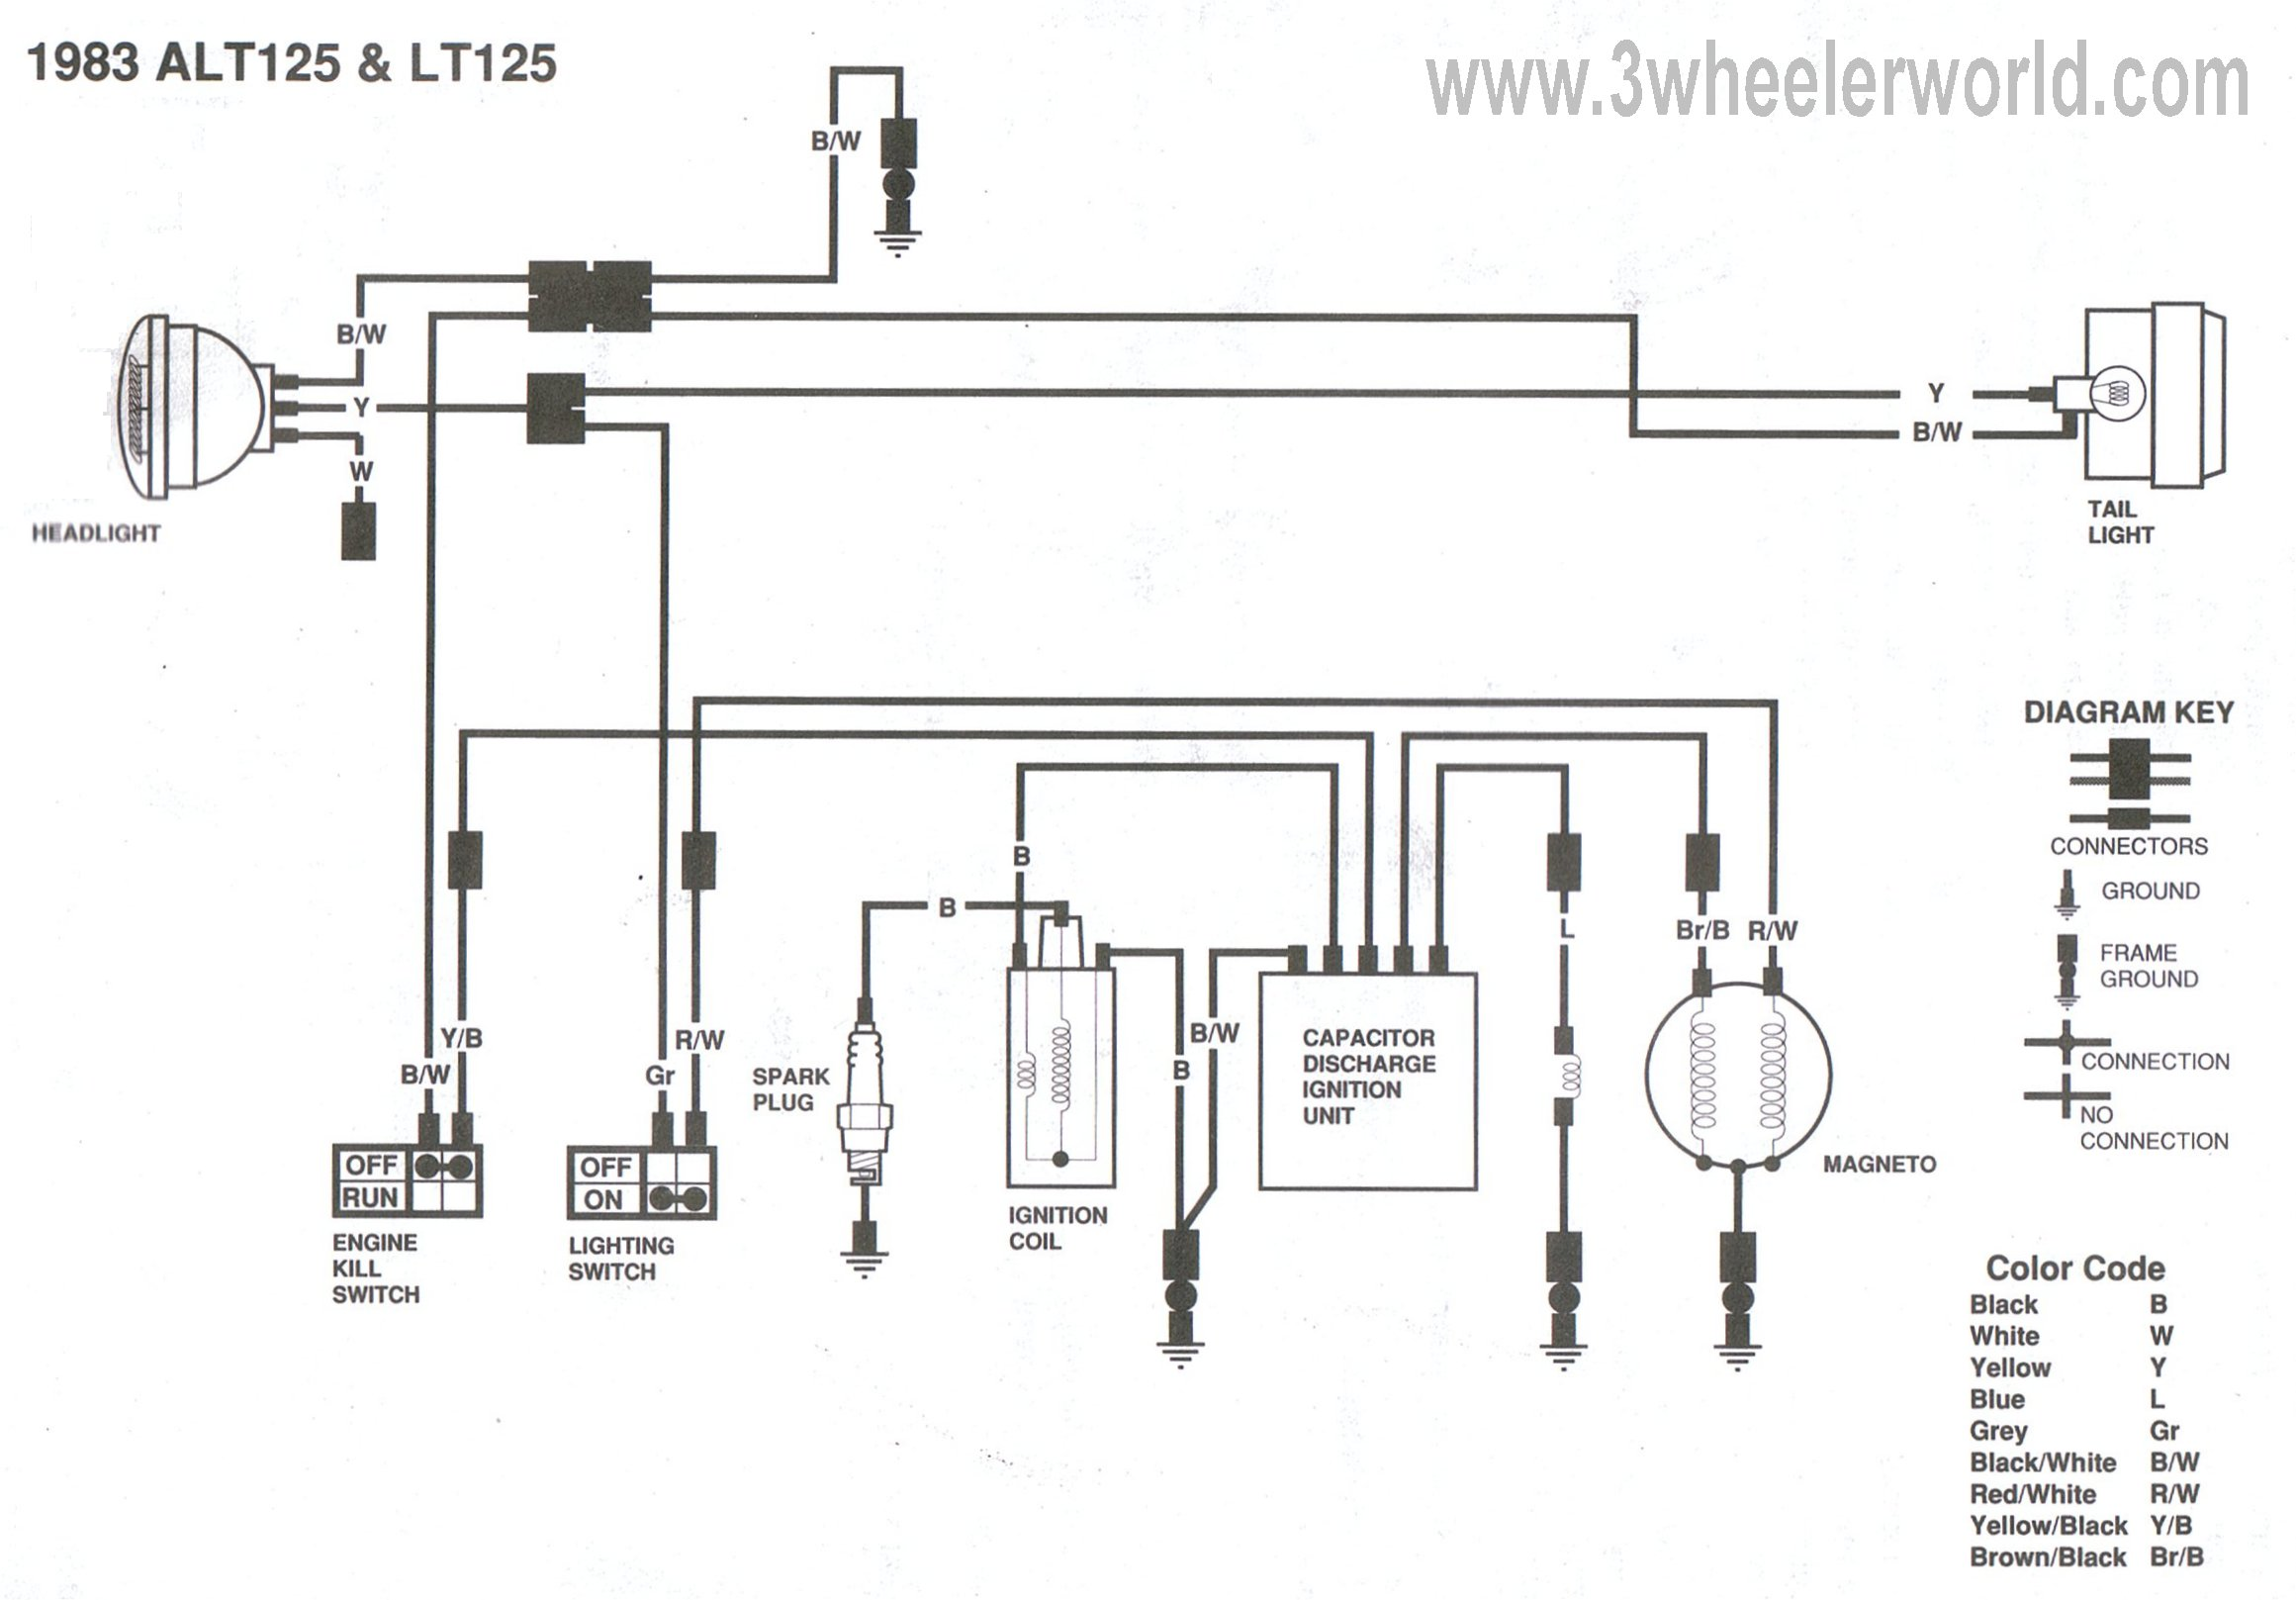 3 wheeler world - tech help - suzuki wiring diagrams, Wiring diagram